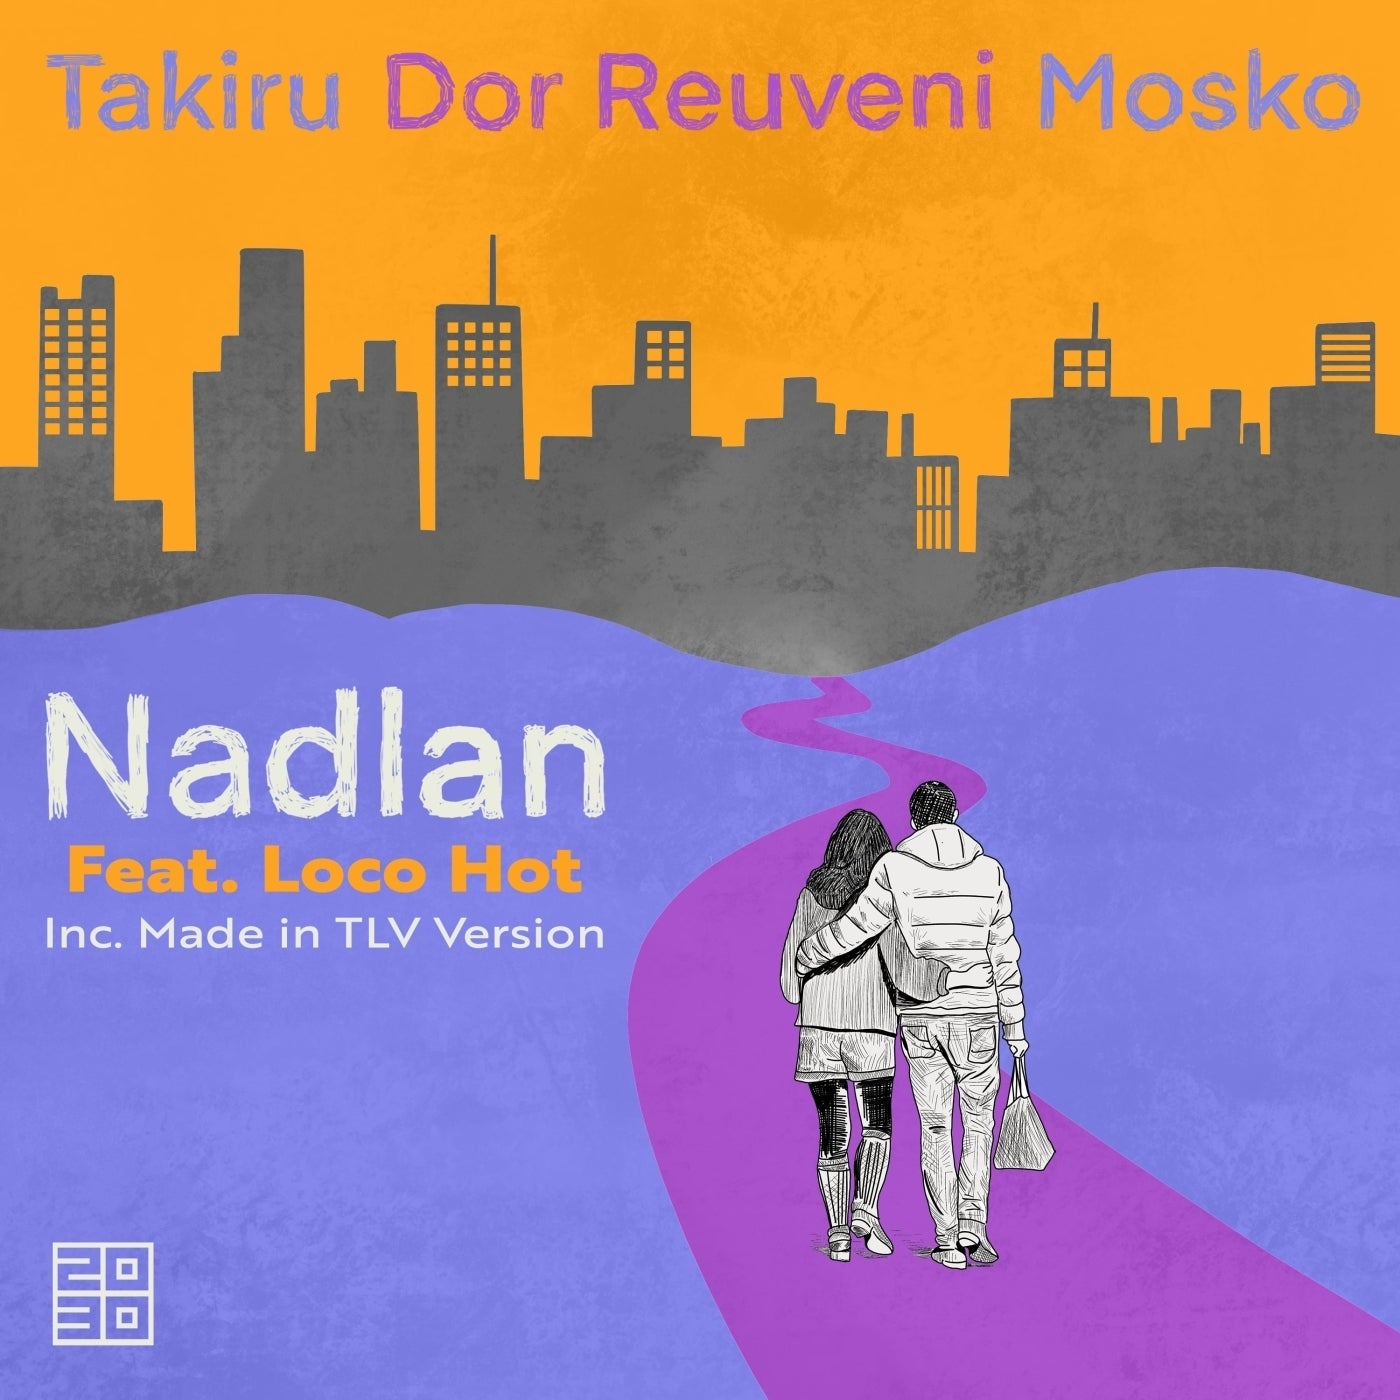 Nadlan feat. Loco Hot (Made in TLV Version)